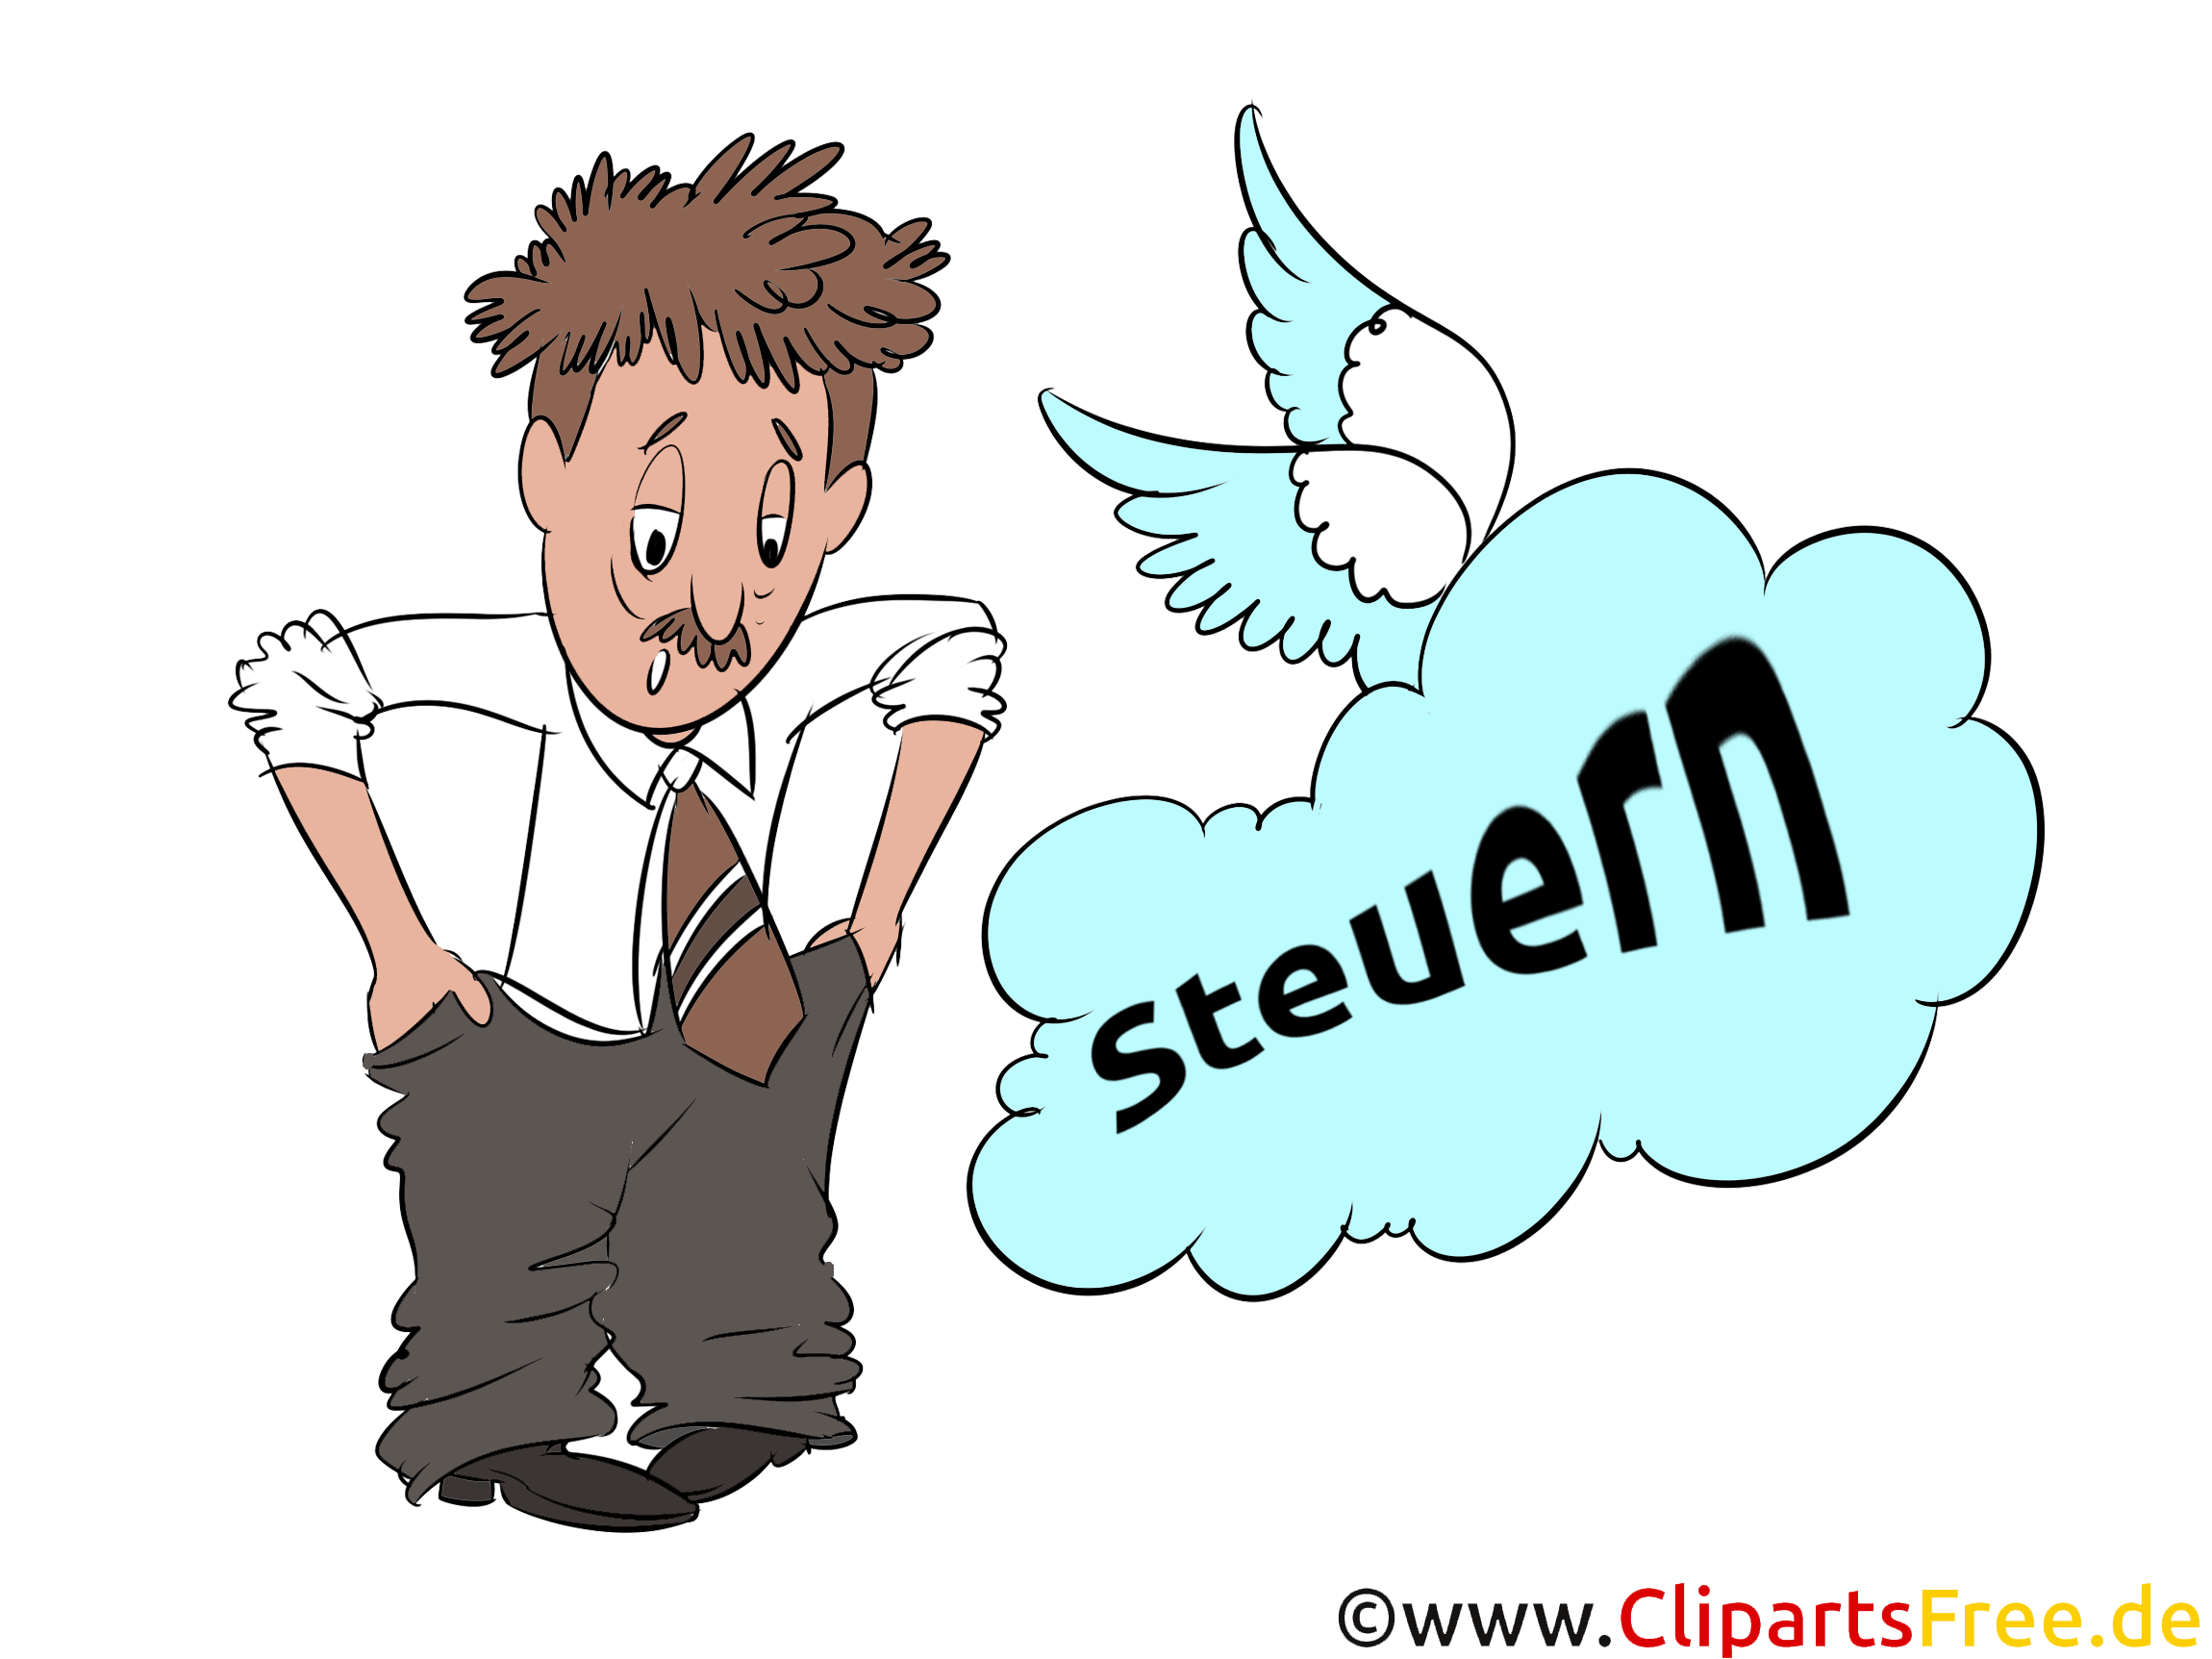 Steuern bezahlen Cliparts, Bilder, Illustrationen